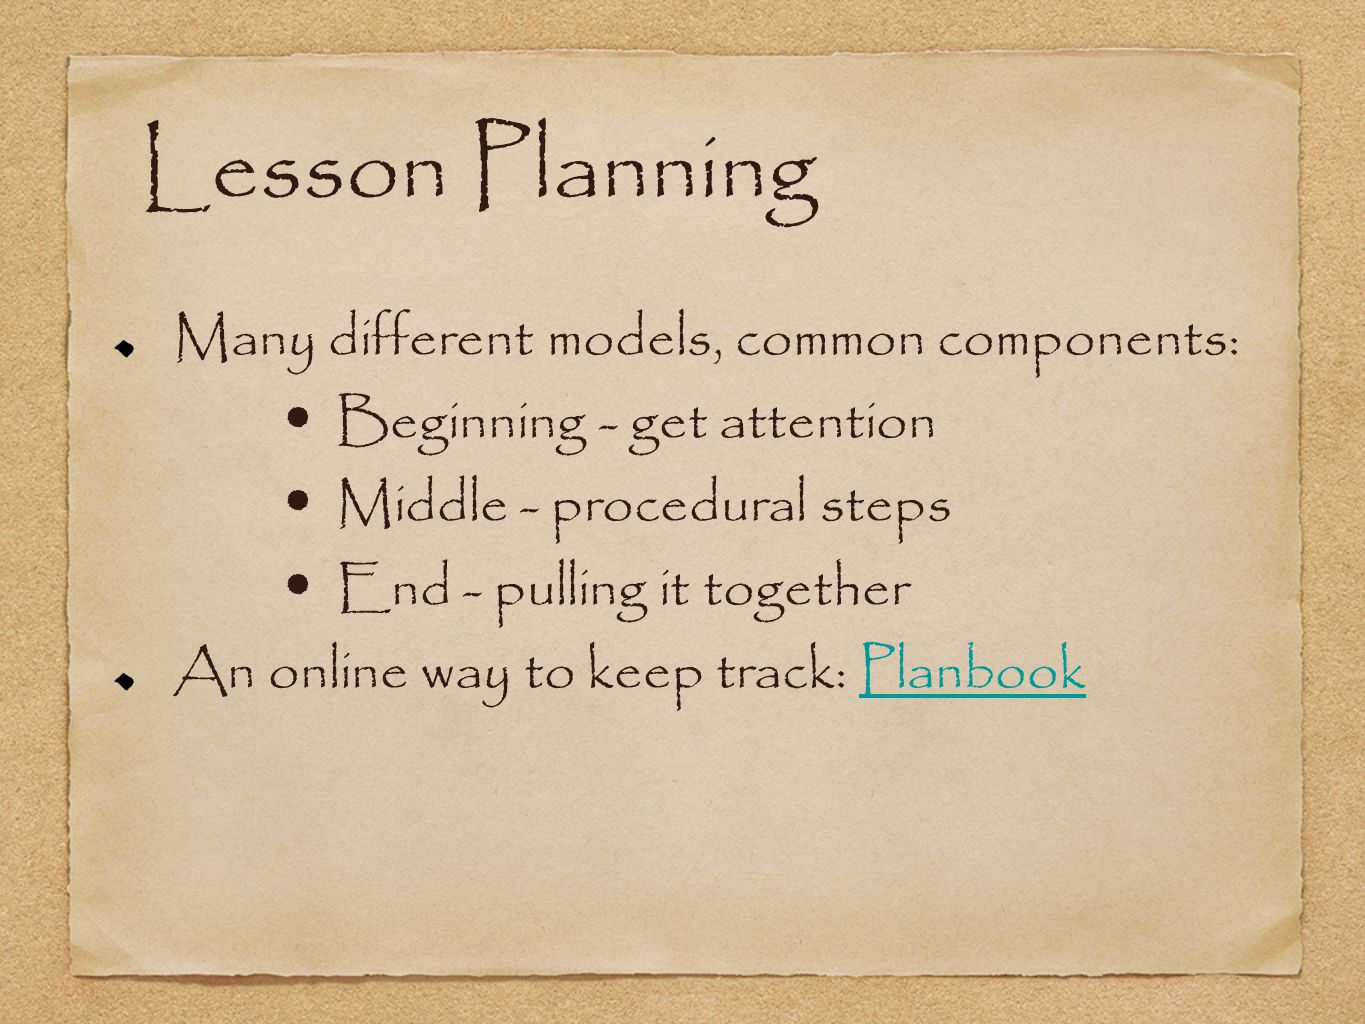 Lesson Planning Many different models, common components: Beginning - get attention Middle - procedural steps End - pulling it together An online way to keep track: PlanbookPlanbook